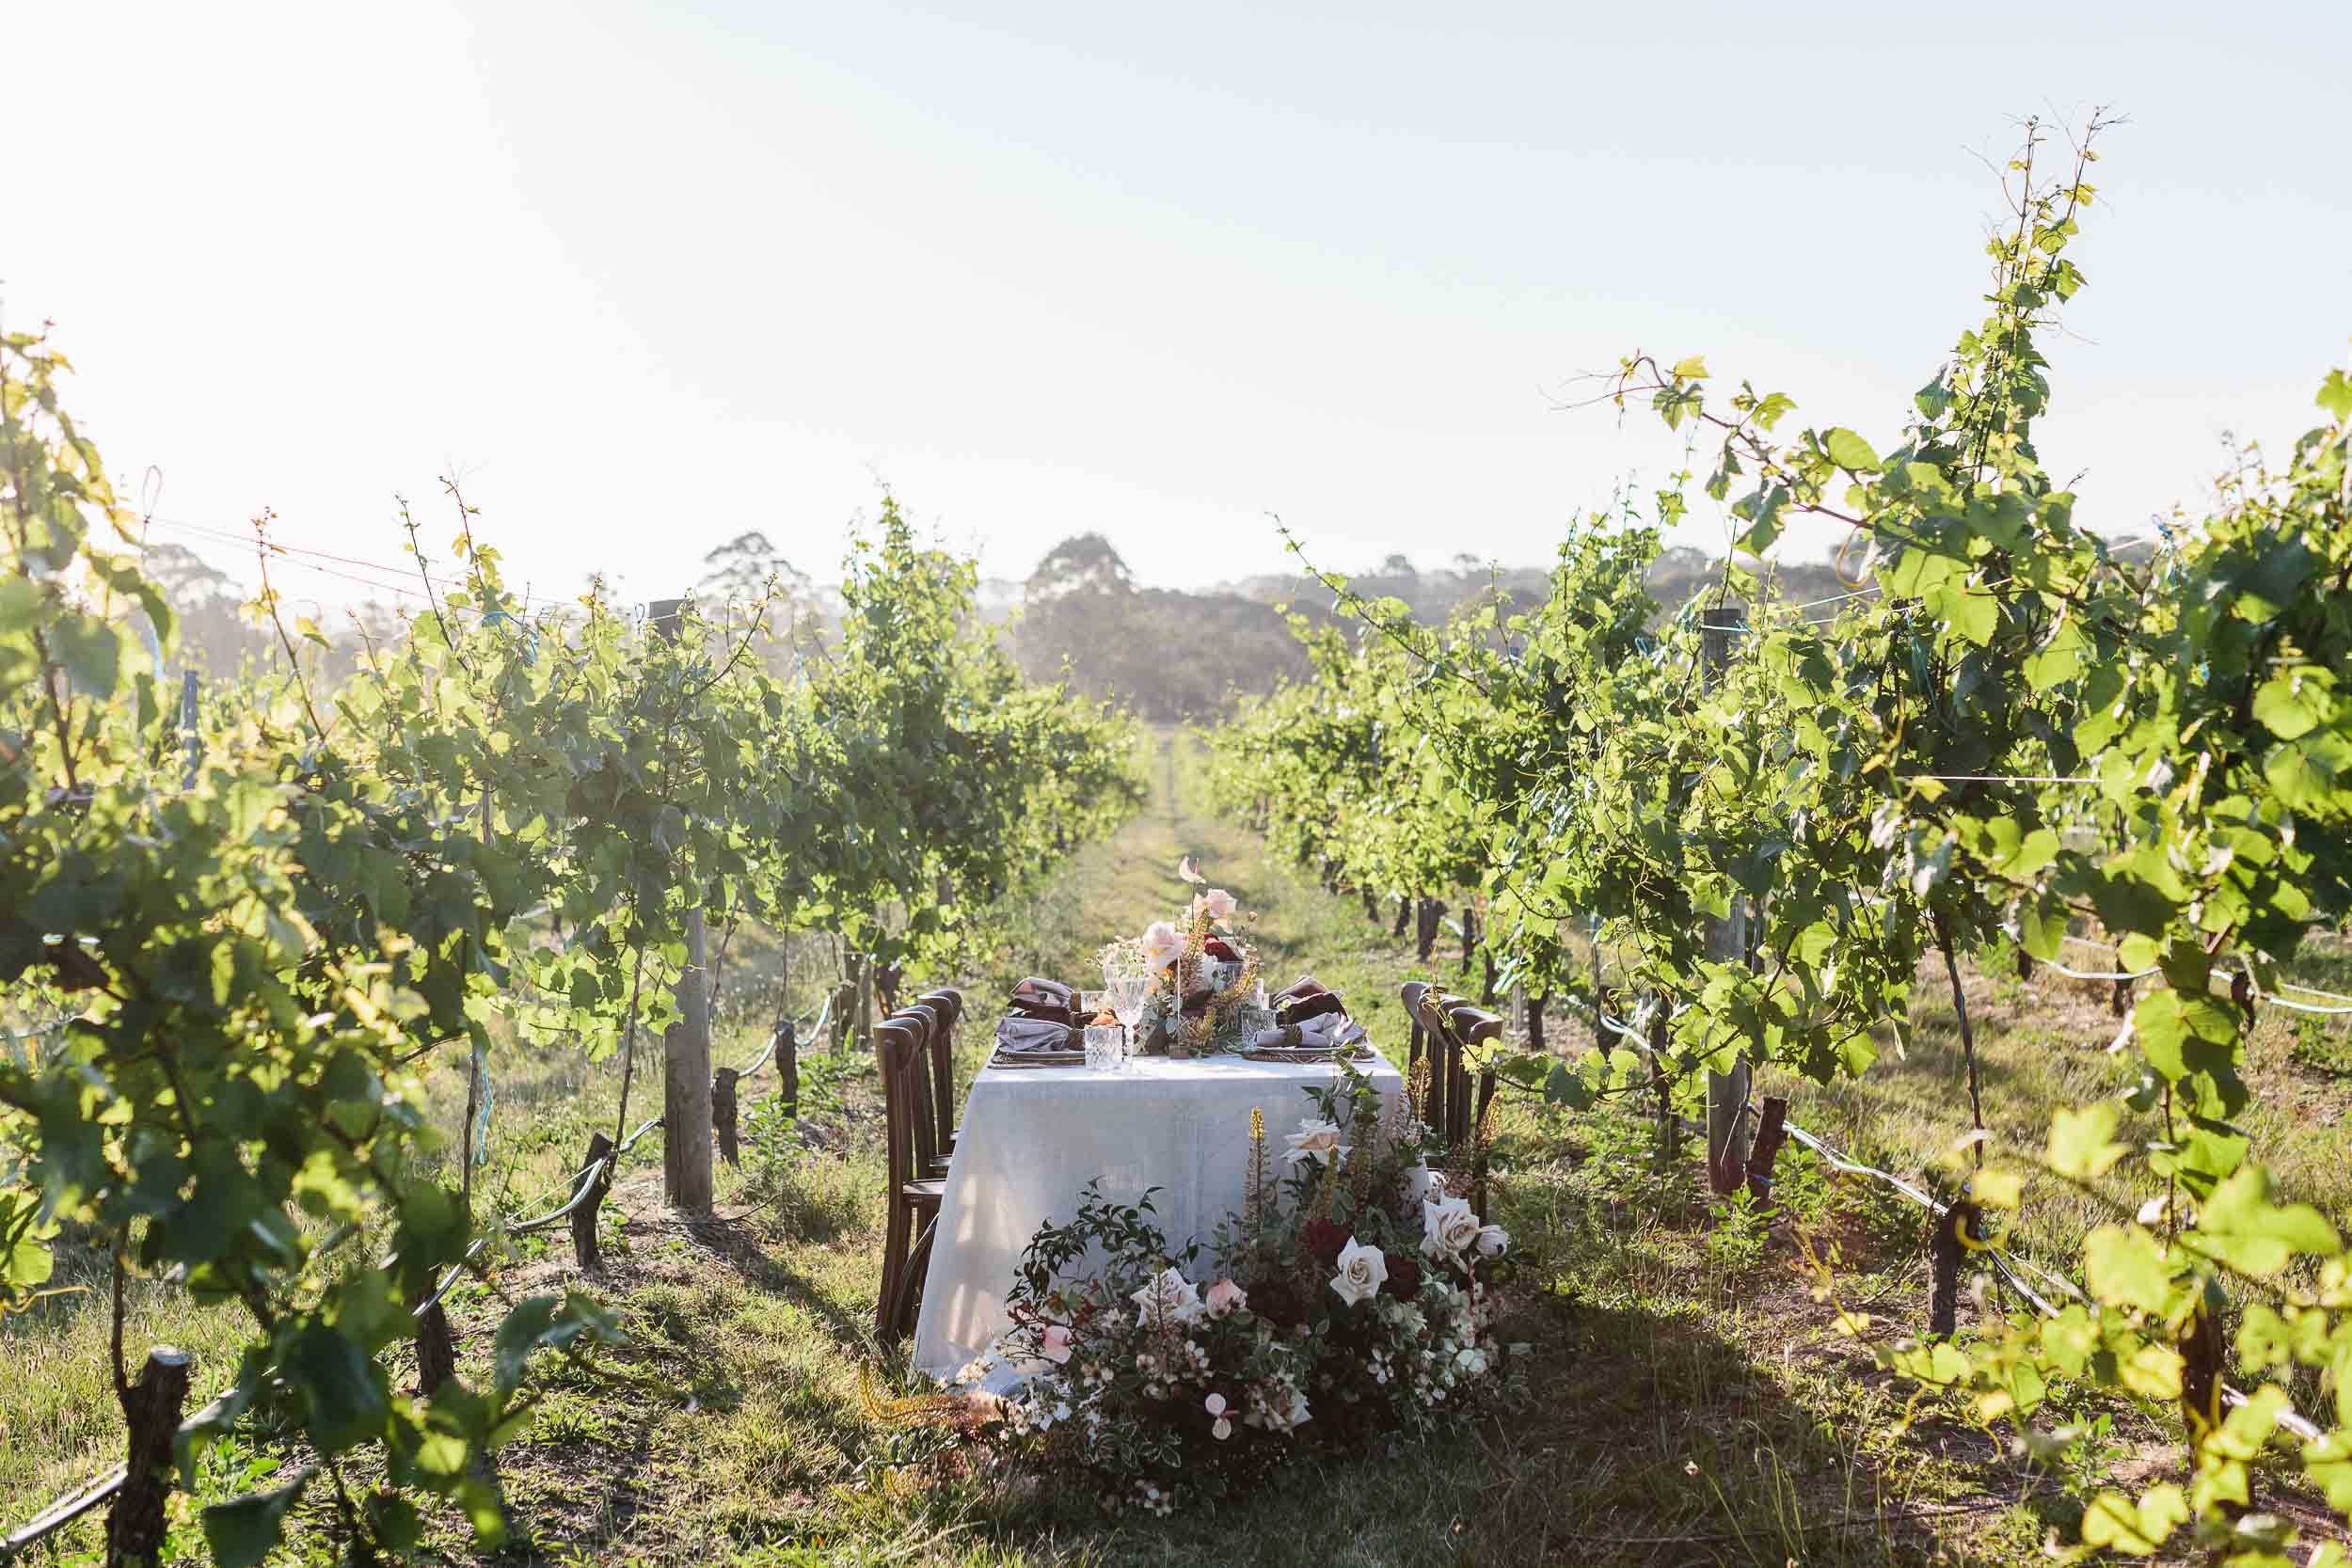 Kas-Richards-Wedding-Ediorial-Photographer-Mornington-Peninsula-Winery-Wedding-Karen-Willis-Holmes-Gown-Pop-up-with-Style-Planners-18.jpg